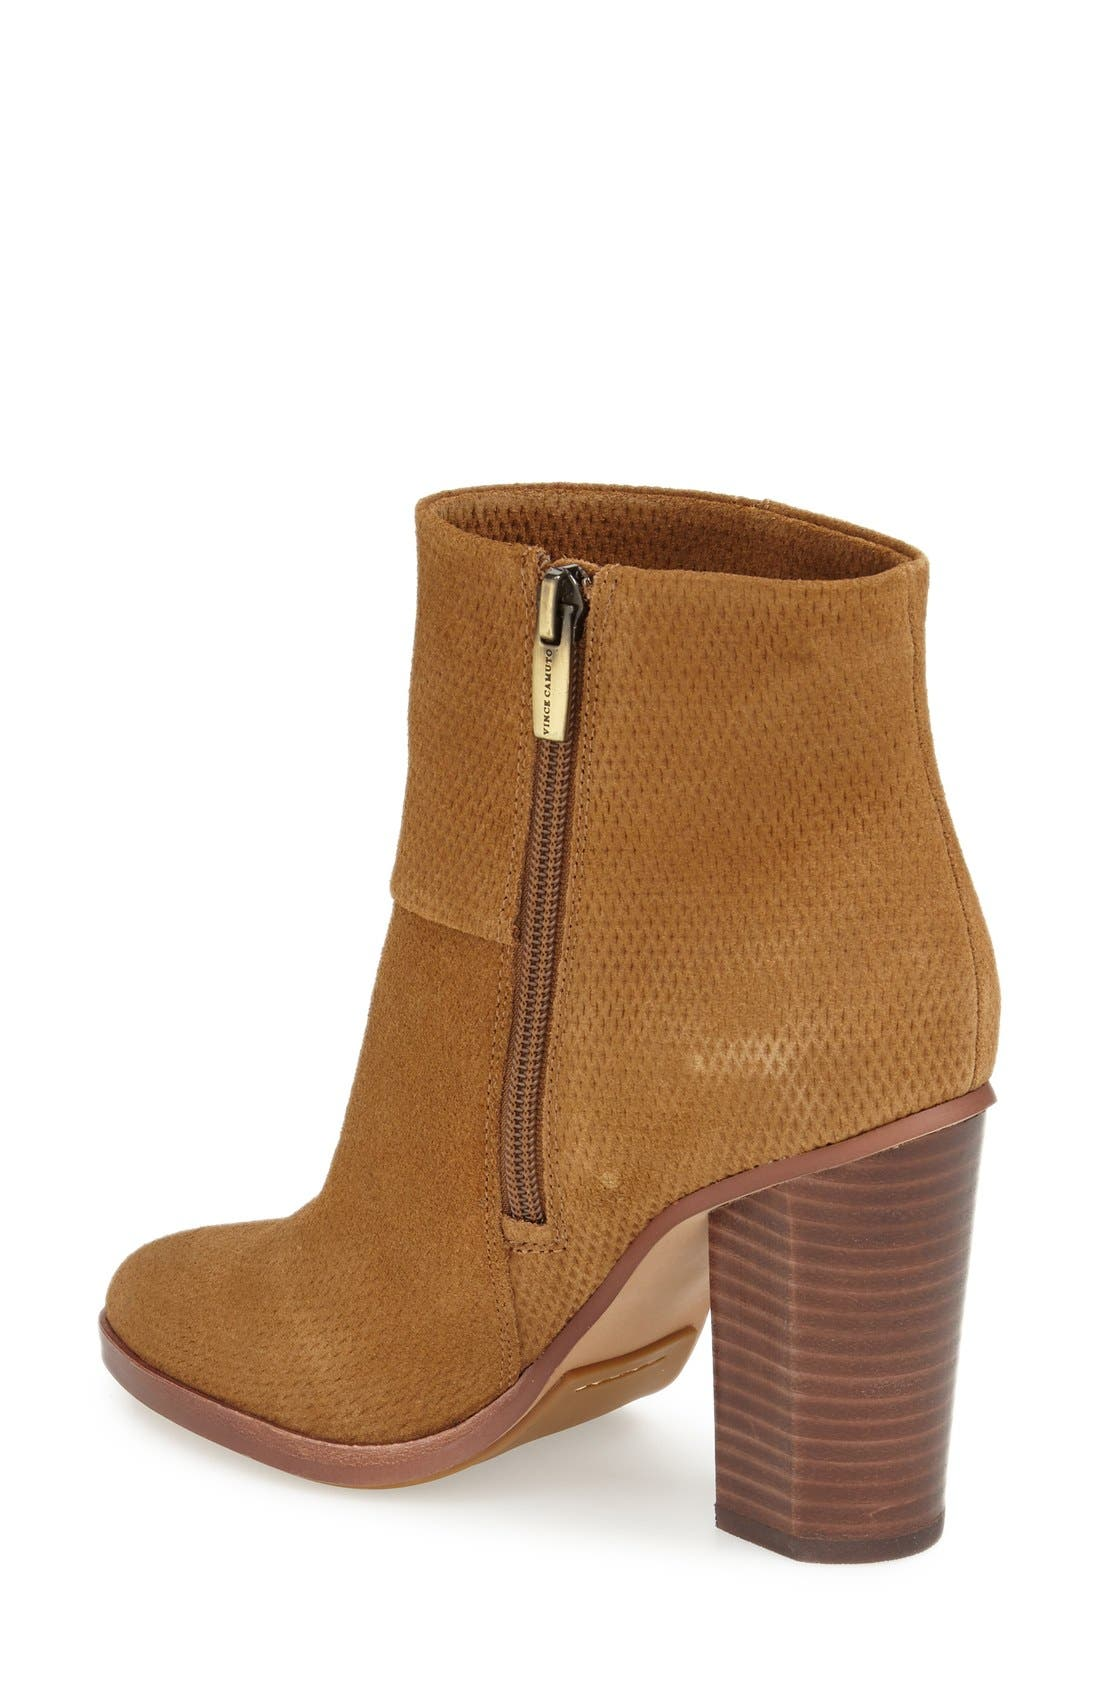 Alternate Image 2  - Vince Camuto 'Larena' Almond Toe Bootie (Women)